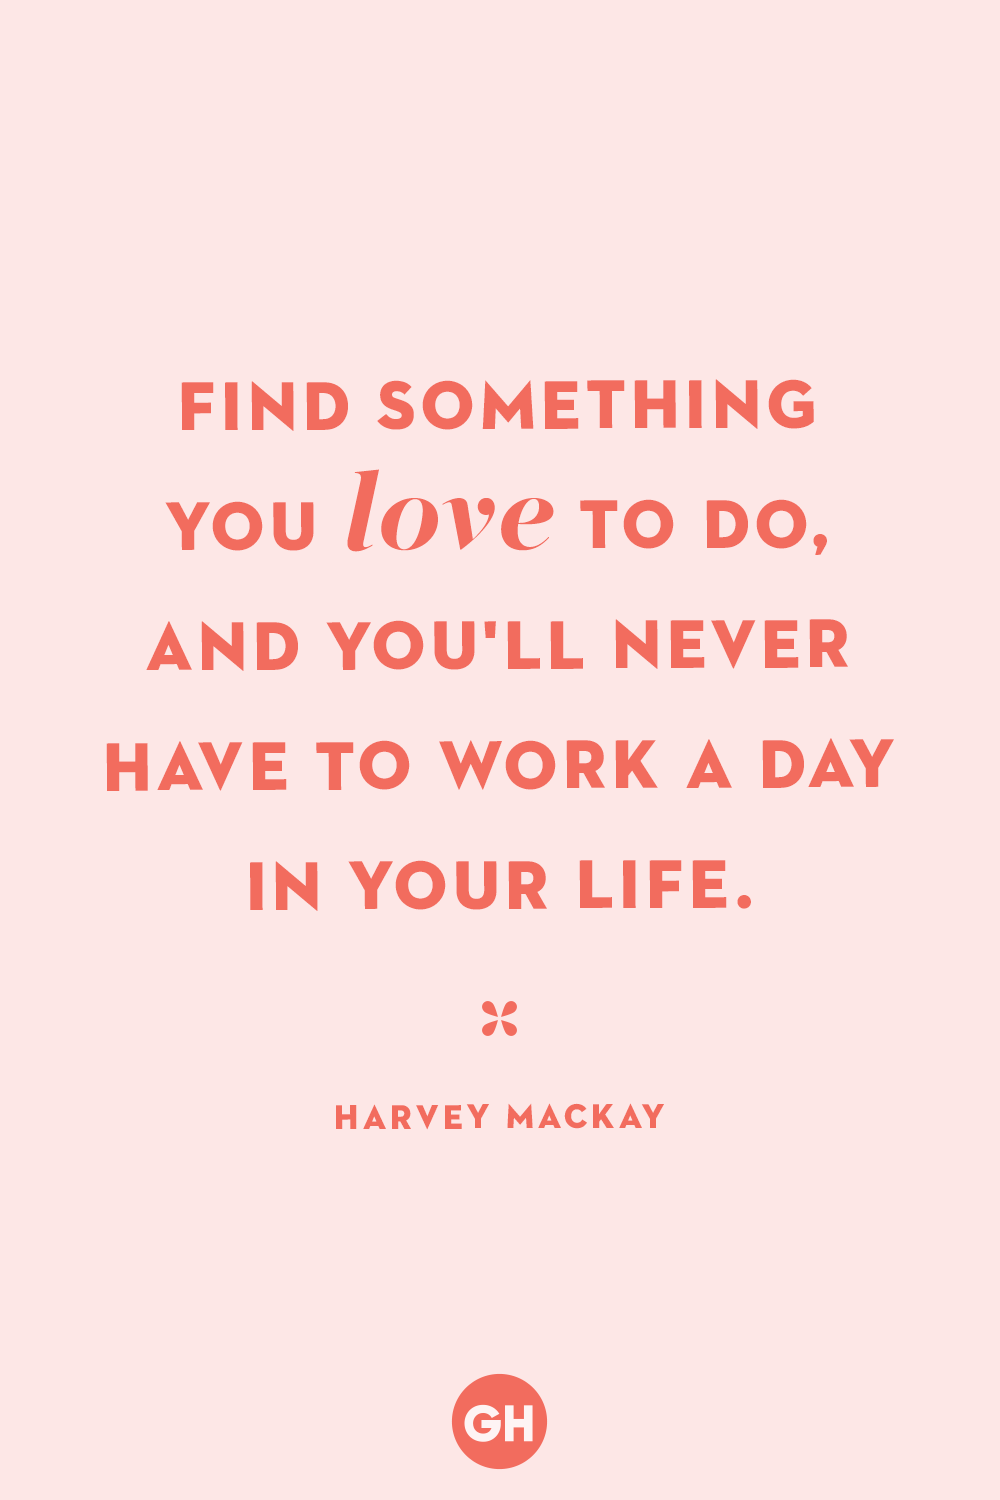 25 Happy Labor Day Quotes - Sayings About Hard Work